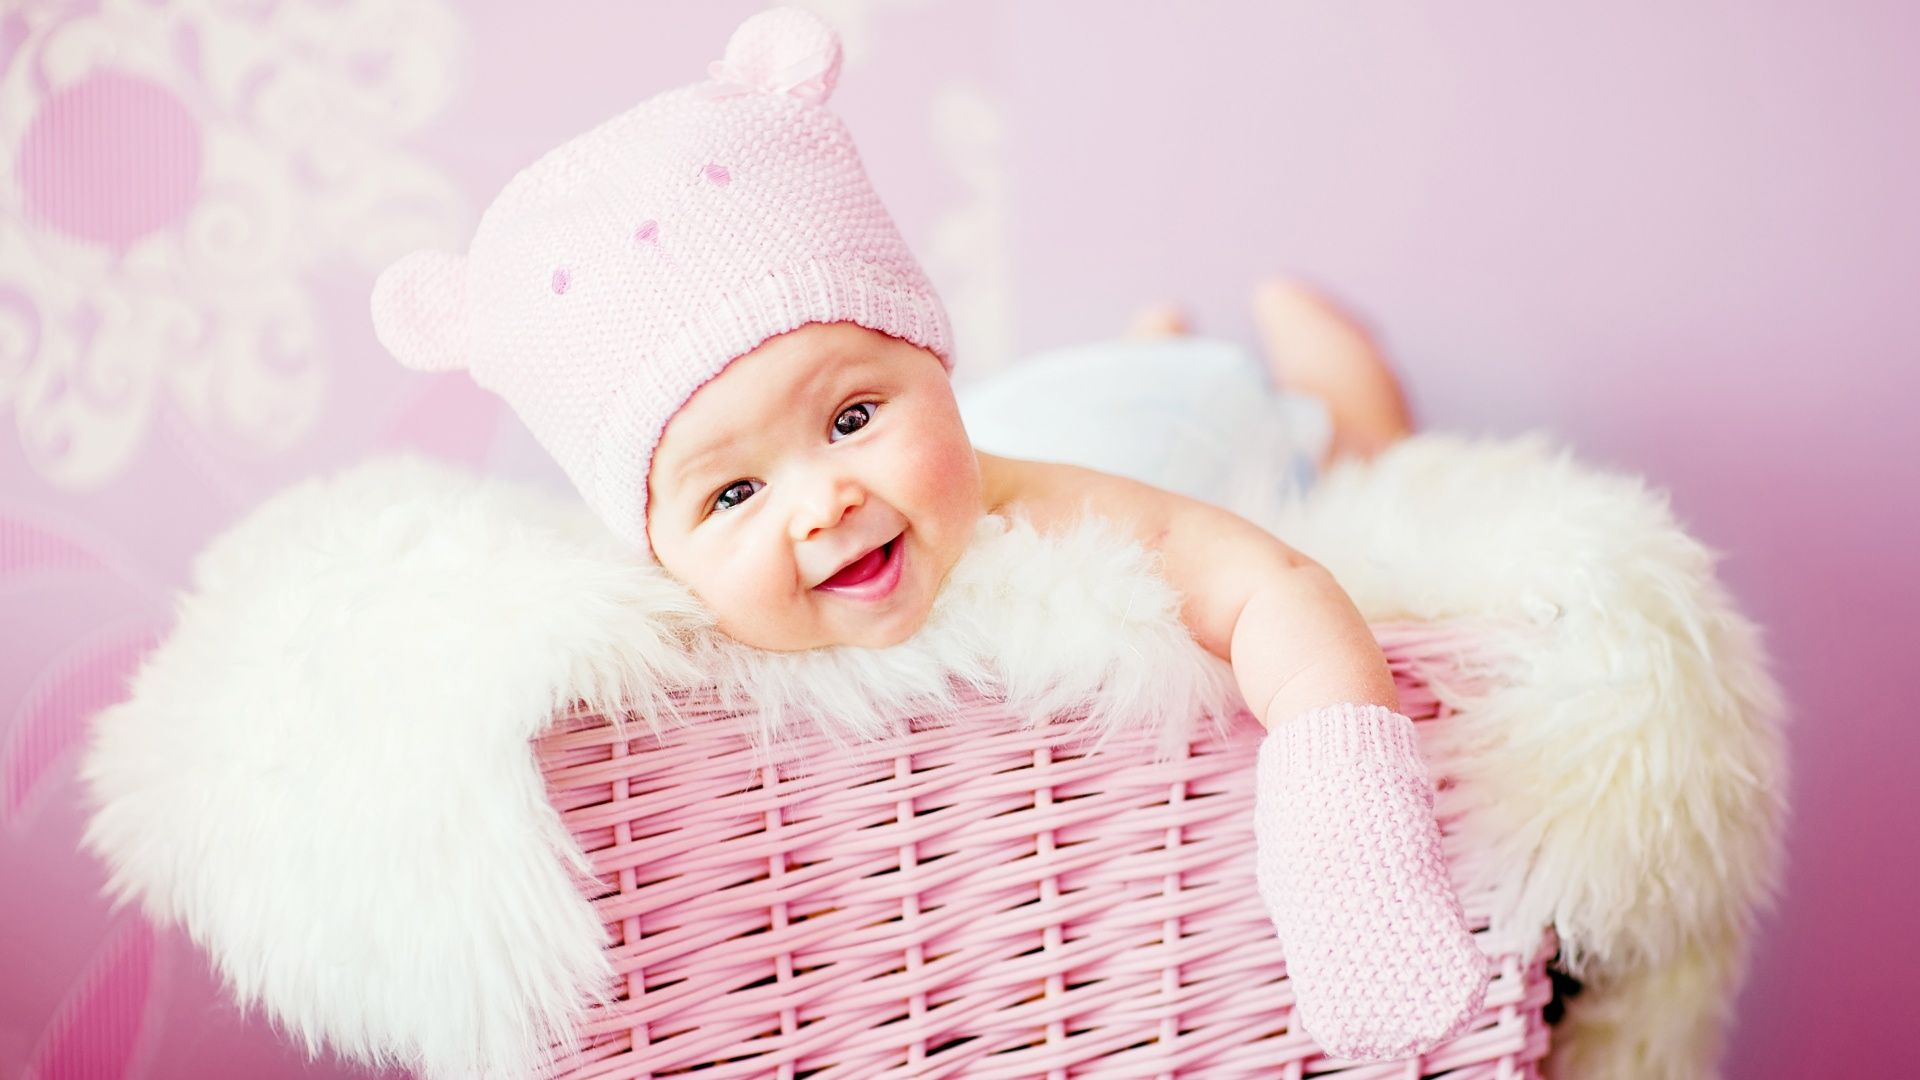 Cute Laughing Baby [1920 x 1080] Need #iPhone #6S #Plus #Wallpaper/ #Background for #IPhone6SPlus? Follow iPhone 6S Plus 3Wallpapers/ #Backgrounds Must to Have http://ift.tt/1SfrOMr